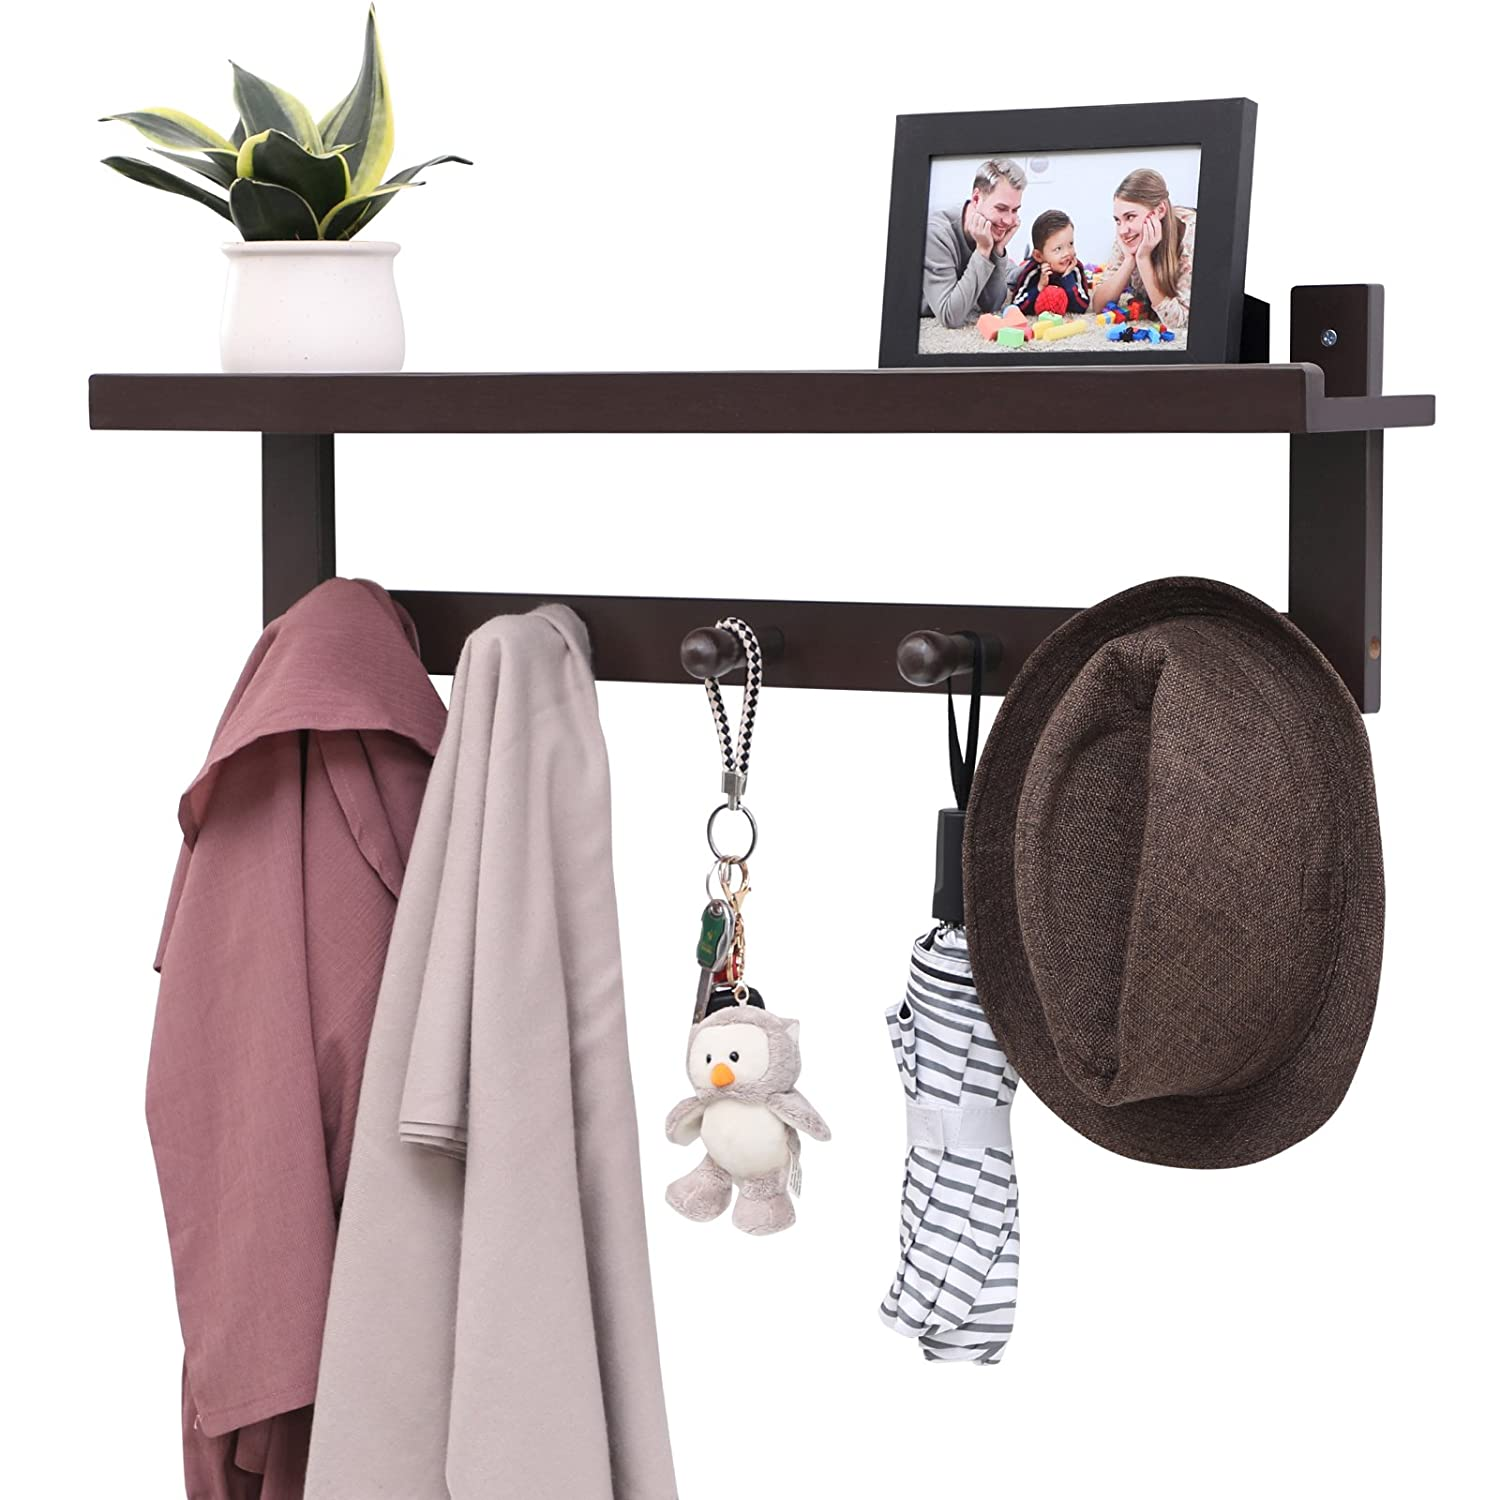 SONGMICS Bamboo Entryway Shelf with 5 Hooks, Wall Mounted Coat Rack with Storage, Hanging Entryway Shelf, Ideal for Living Room Bedroom Bathroom and Kitchen Brown URCR105BR